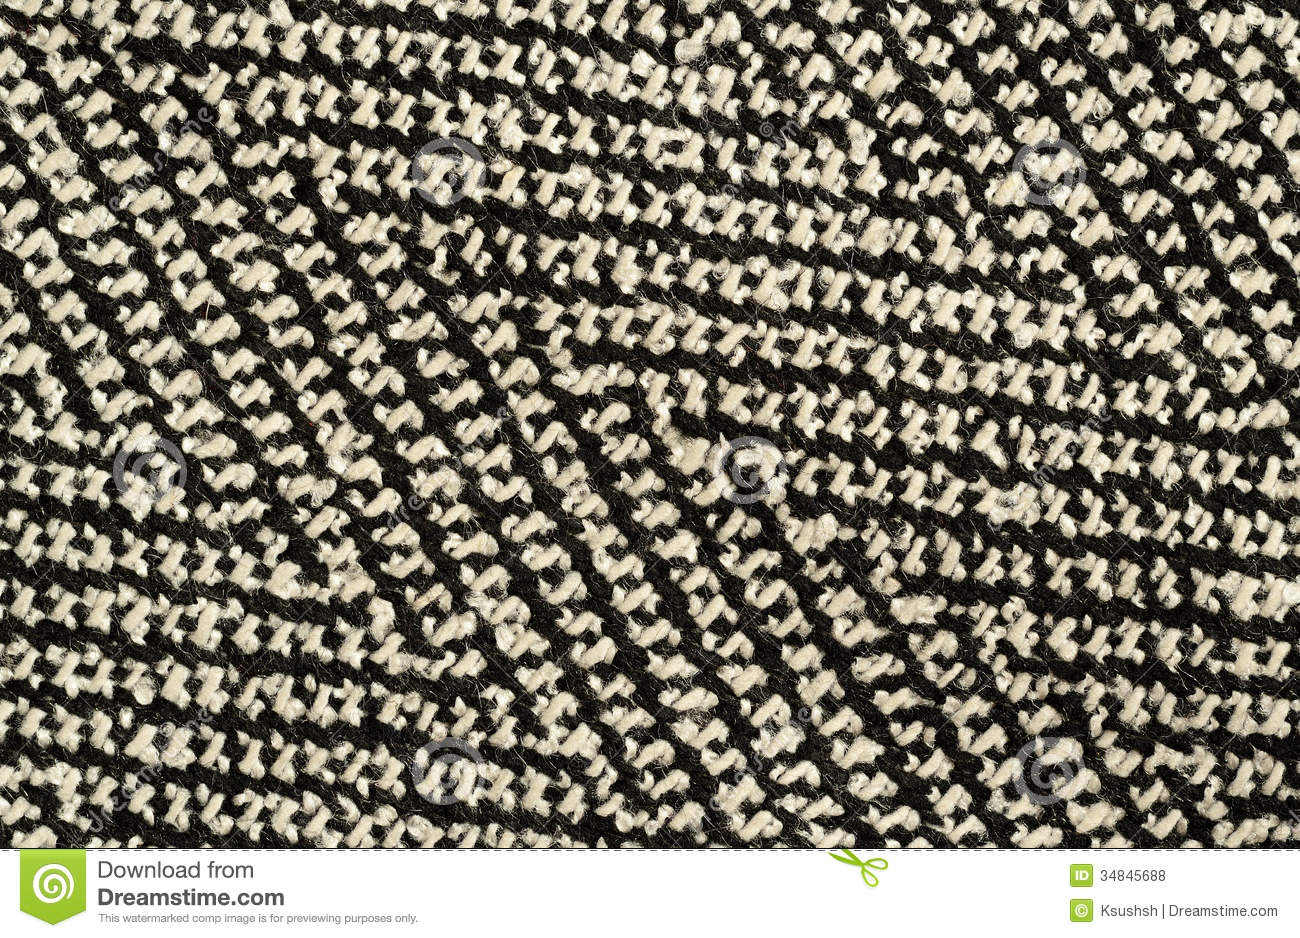 royaltyfree stock photo download wool black and white fabric